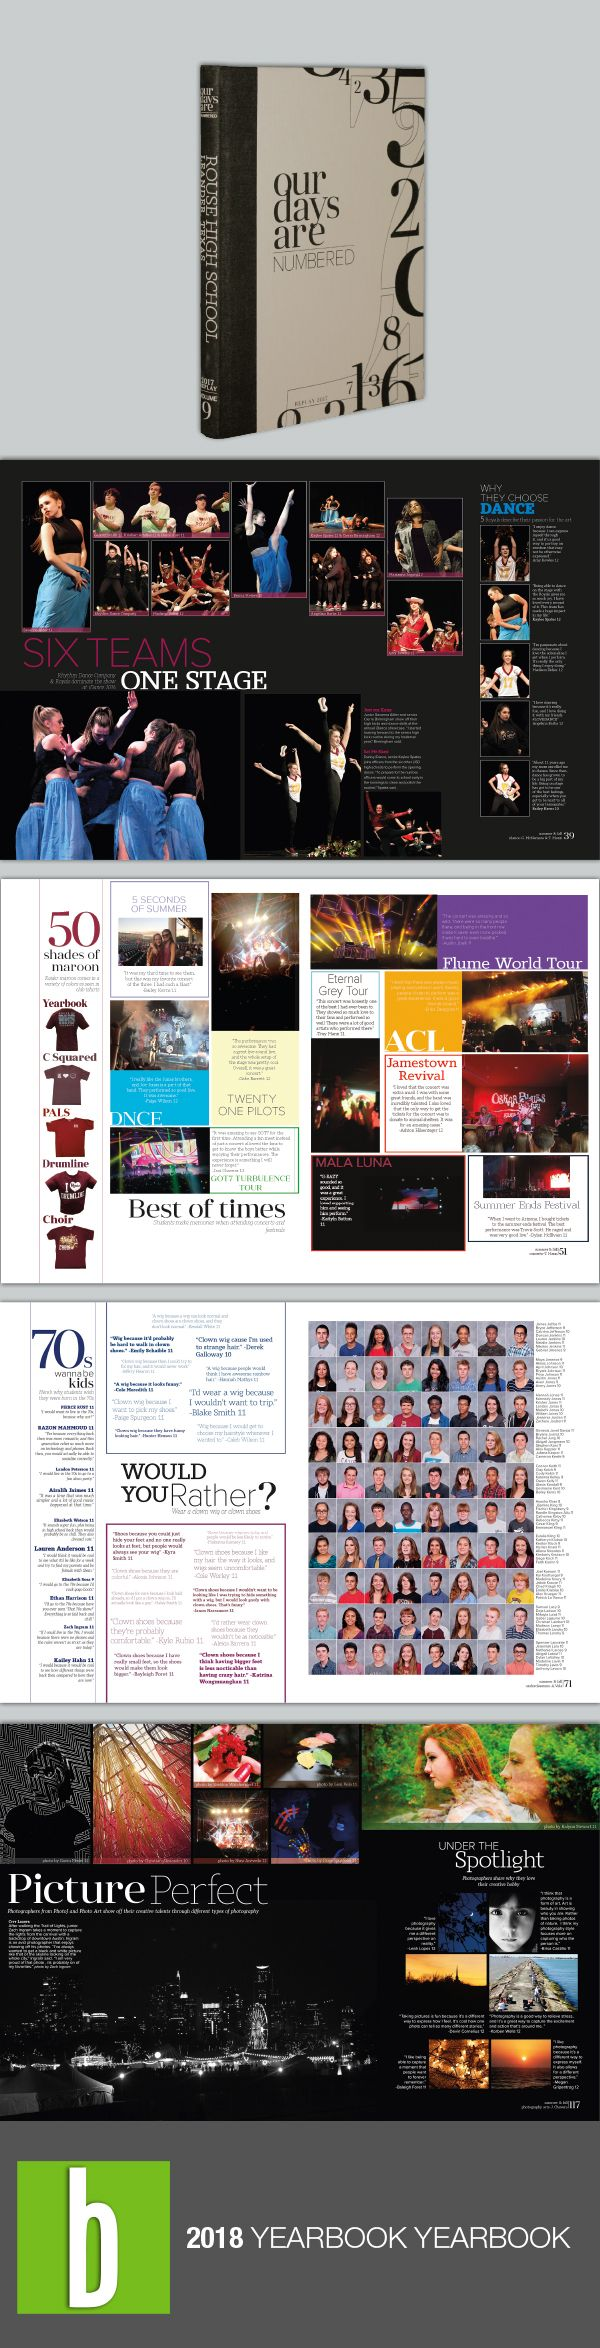 Replay rouse high school leander texas tms yearbook pinterest